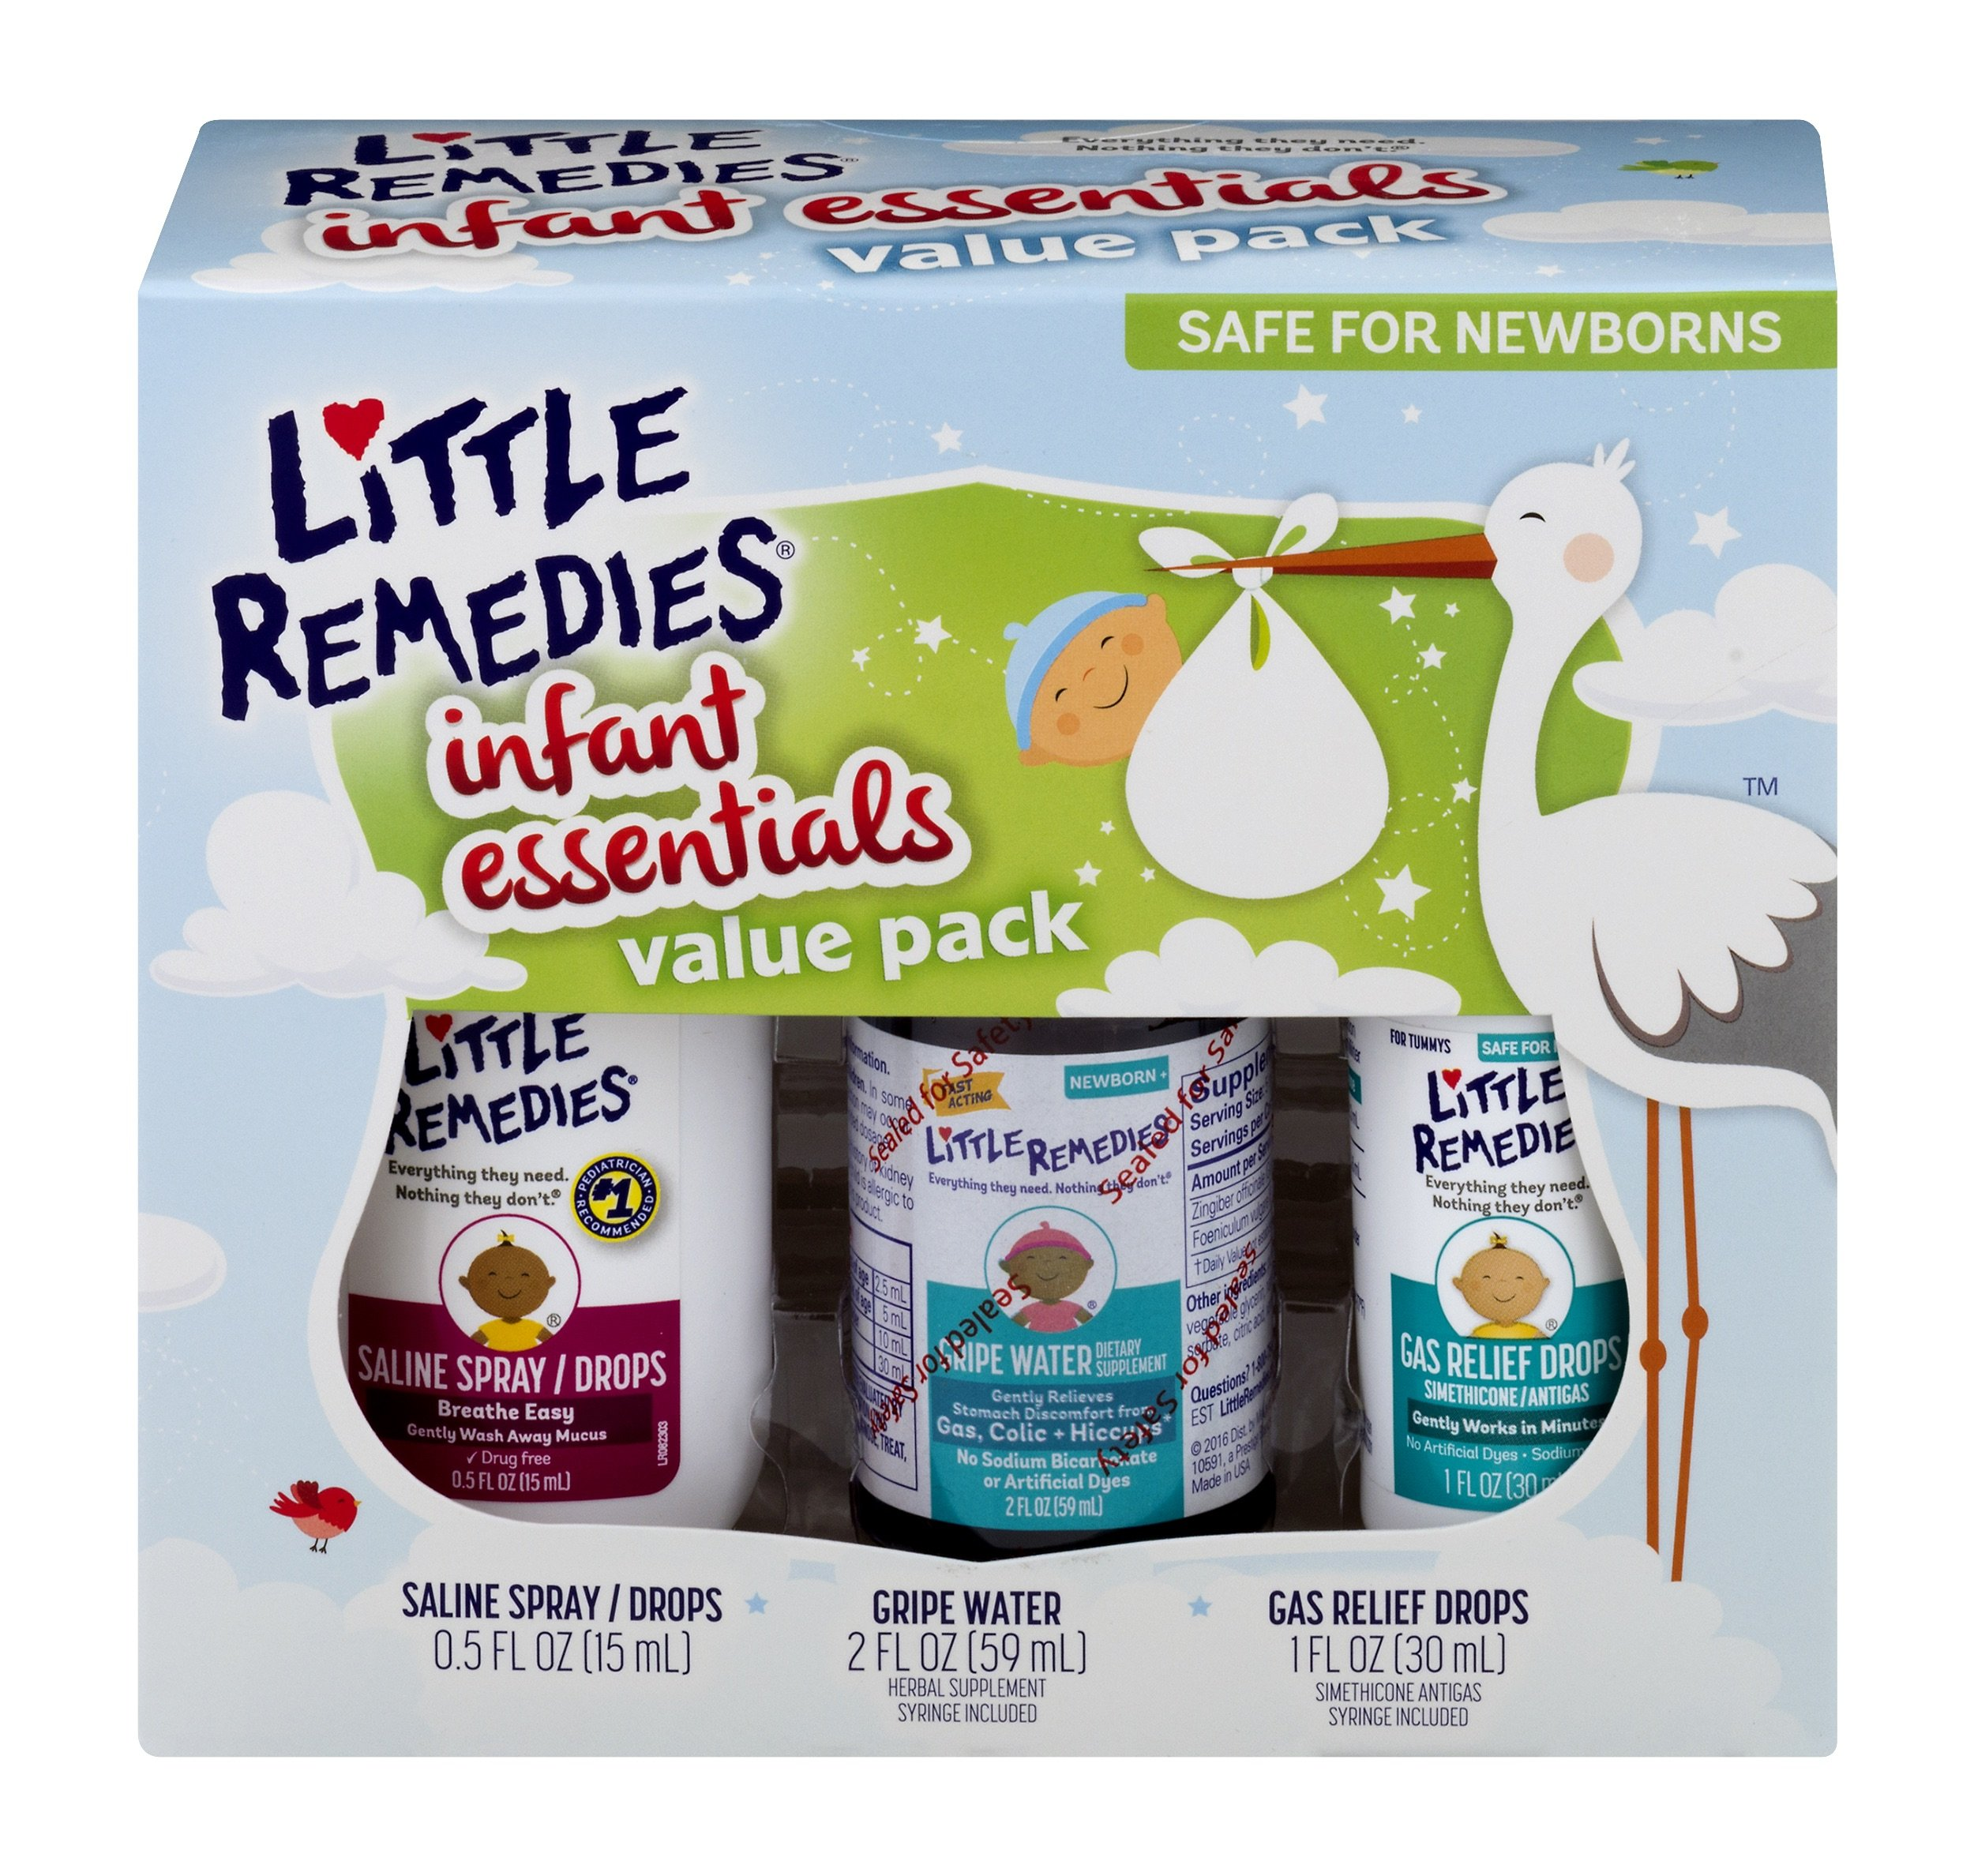 Little Remedies Infant Essentials Value Pack | 3 Great Products for Baby's Nose and Tummy by Little Remedies